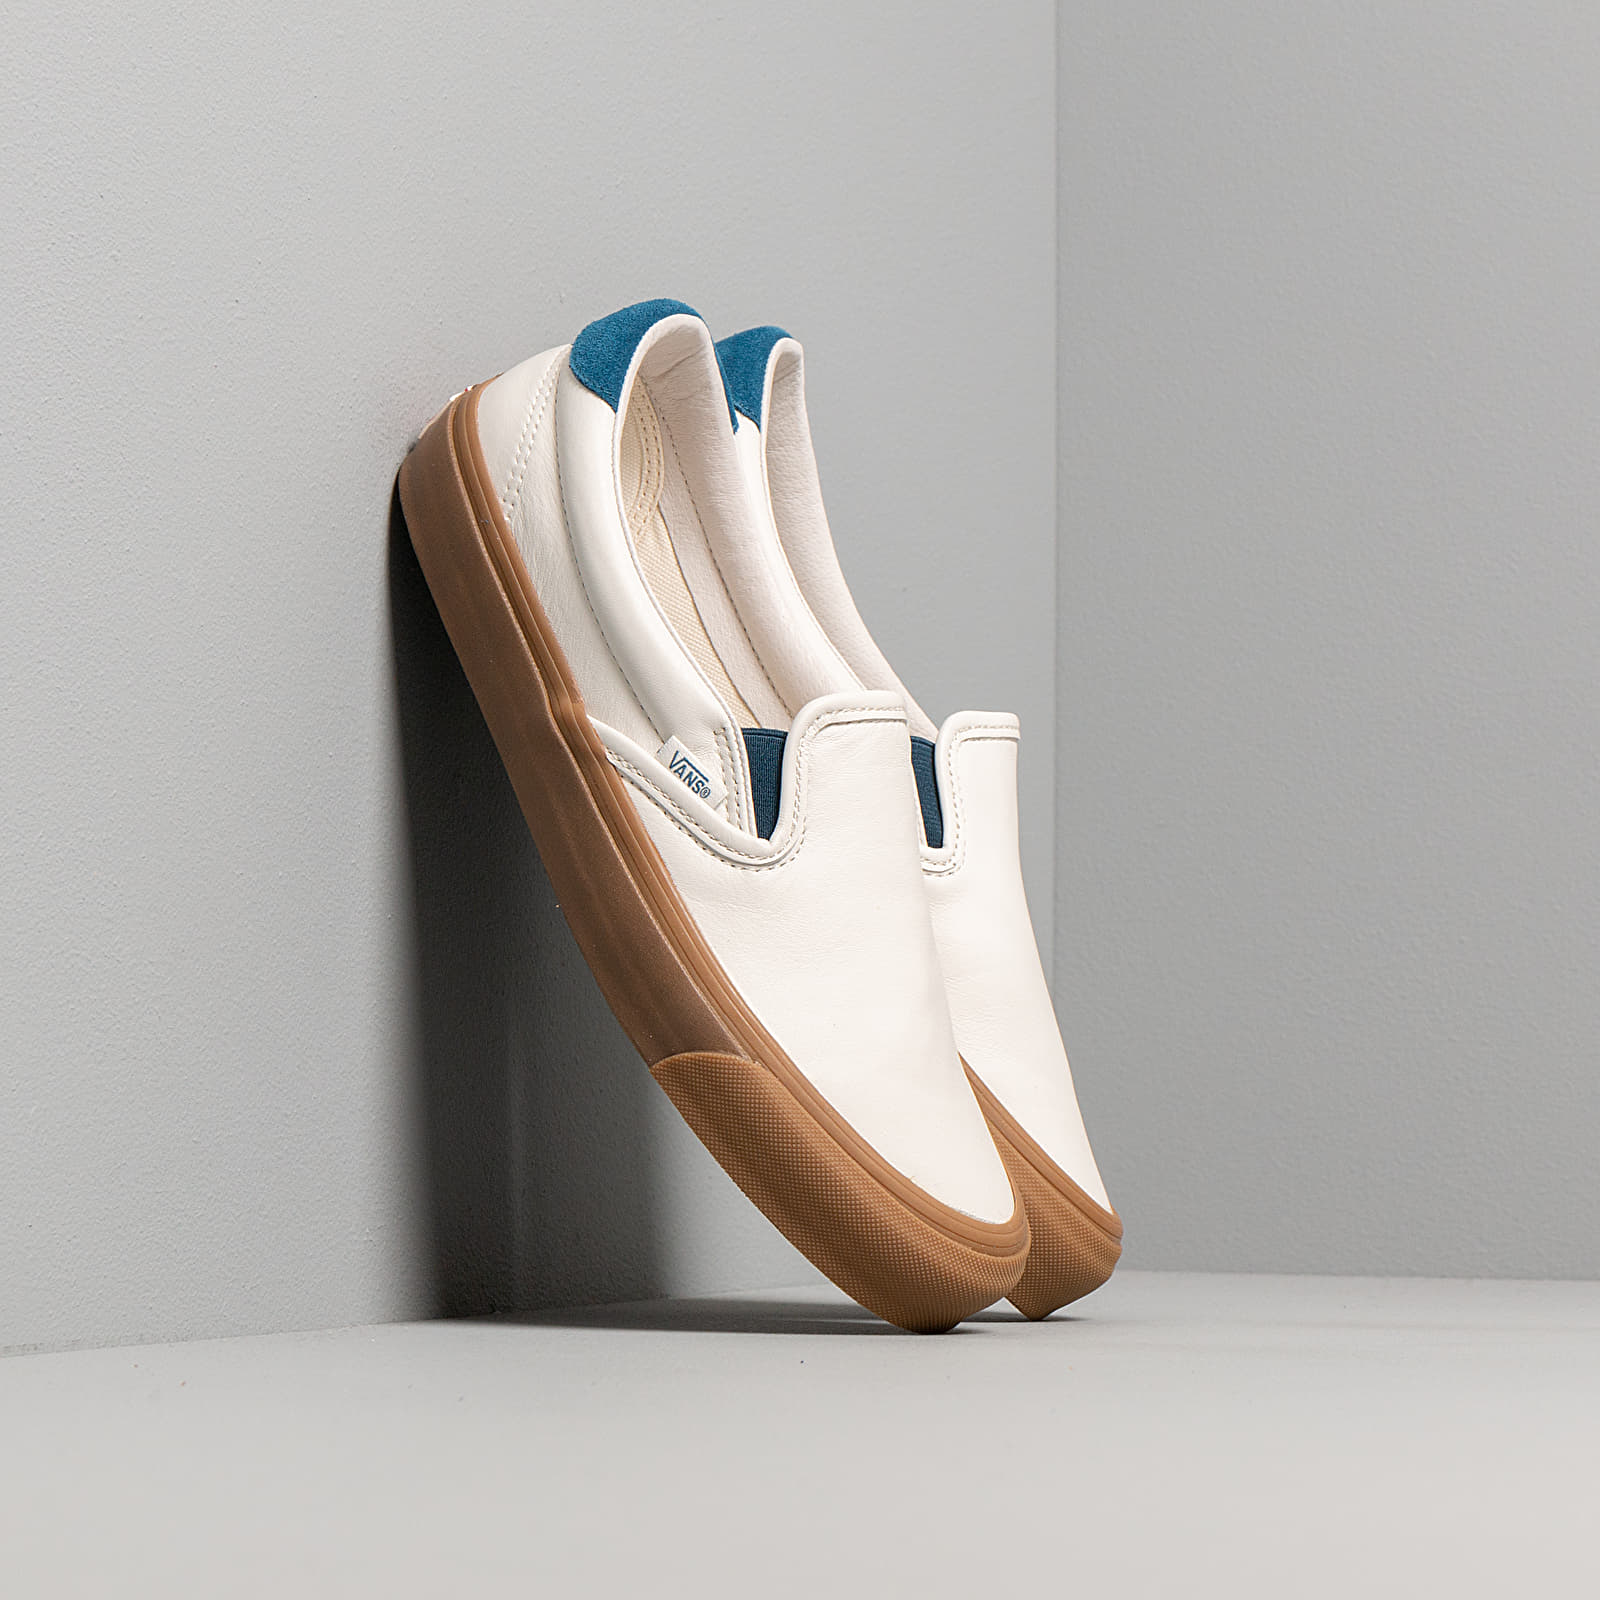 Zapatillas Hombre Vans OG Slip-On 59 LX (Leather/ Suede) Marshmallow